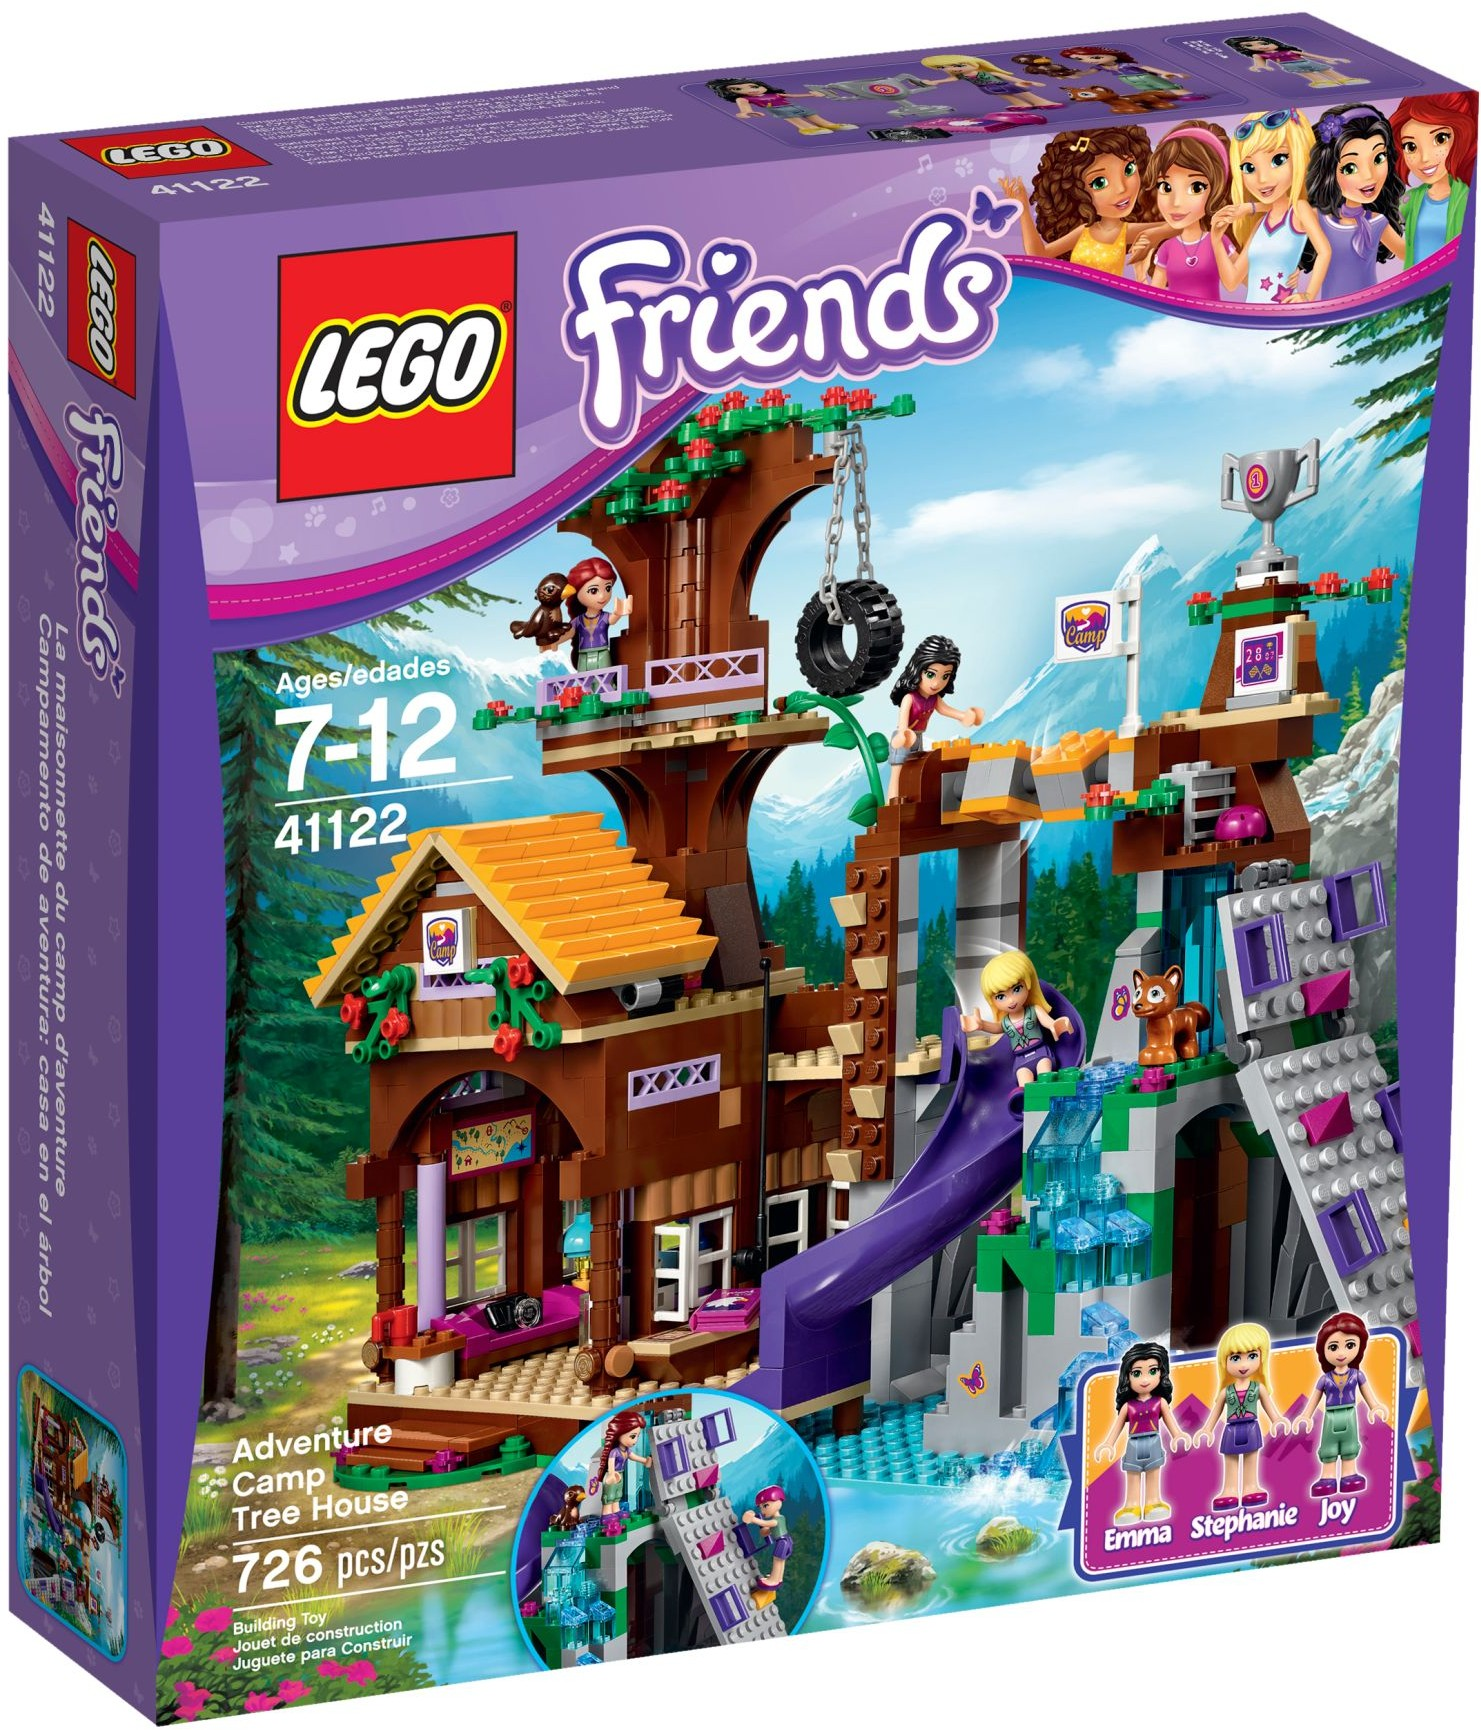 lego friends 41122 pas cher la cabane de la base d 39 aventure. Black Bedroom Furniture Sets. Home Design Ideas